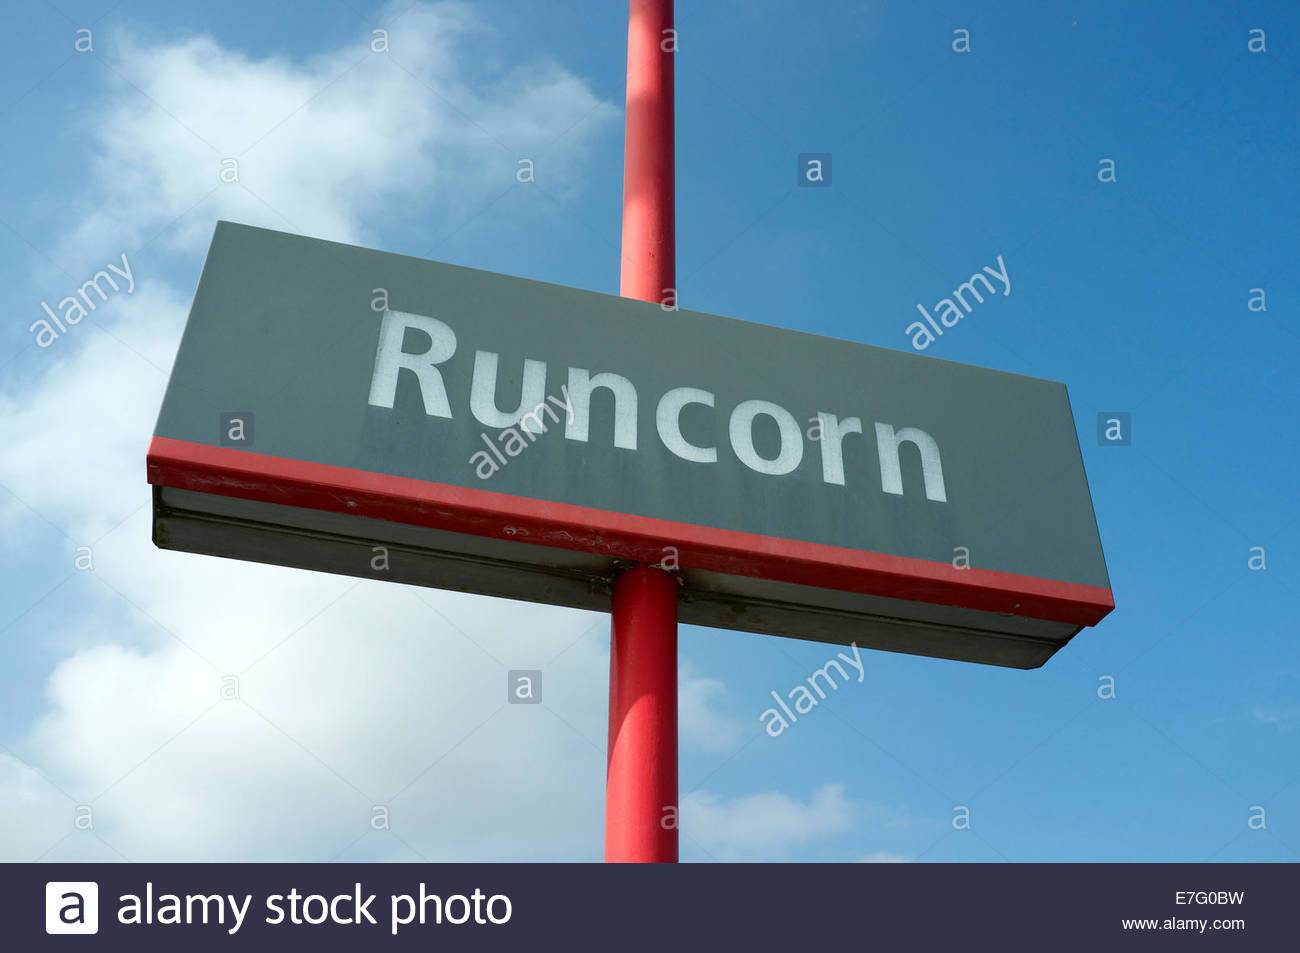 Runcorn - place name location sign at town's railway station, in Cheshire, UK. - Stock Image